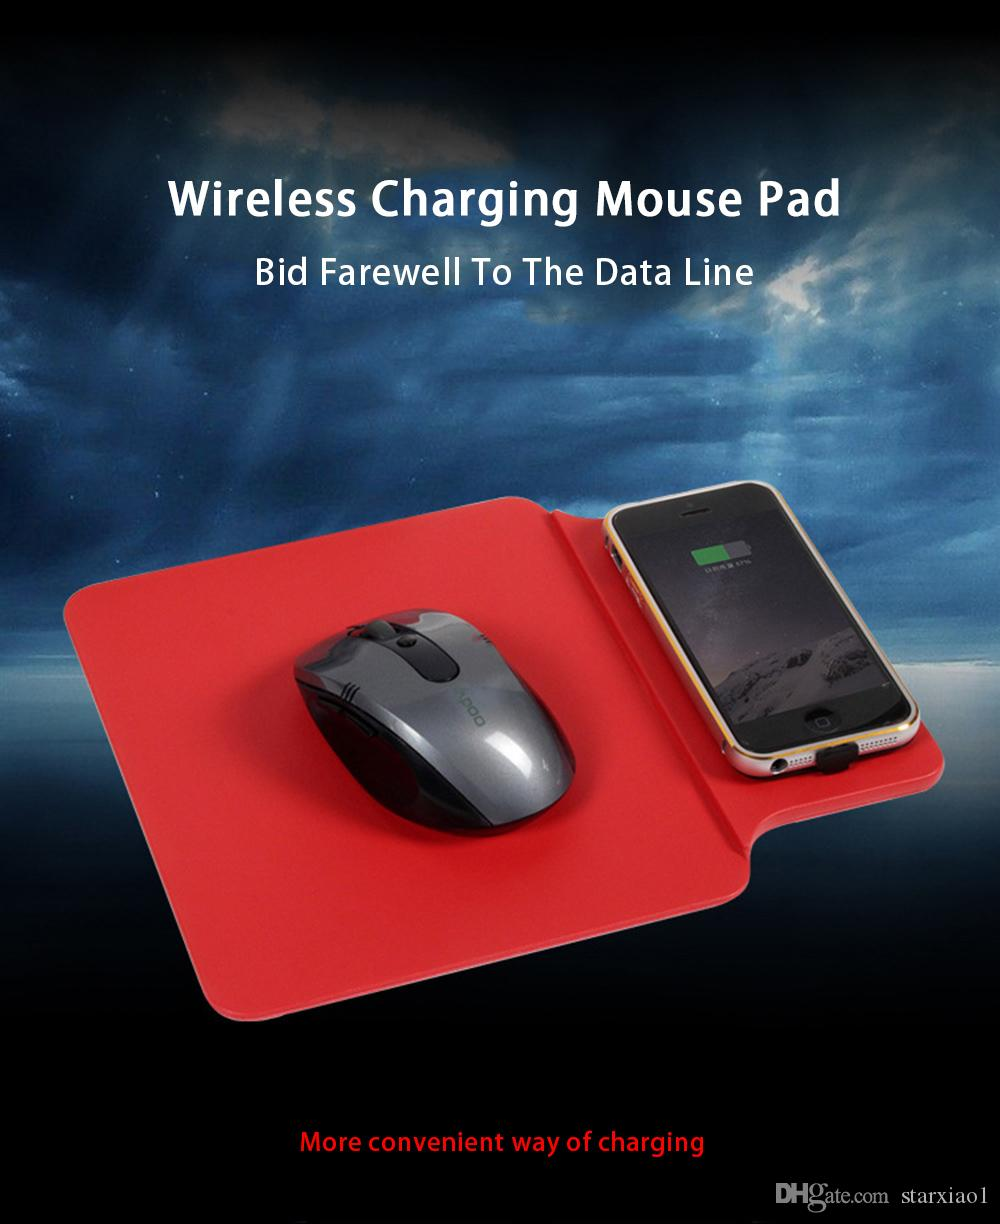 Tappetino mouse pad caricabatteria multifunzione Qi wireless Samsung Galaxy S8 Plus S7 S6 Edge iphone 8 plus iphone x